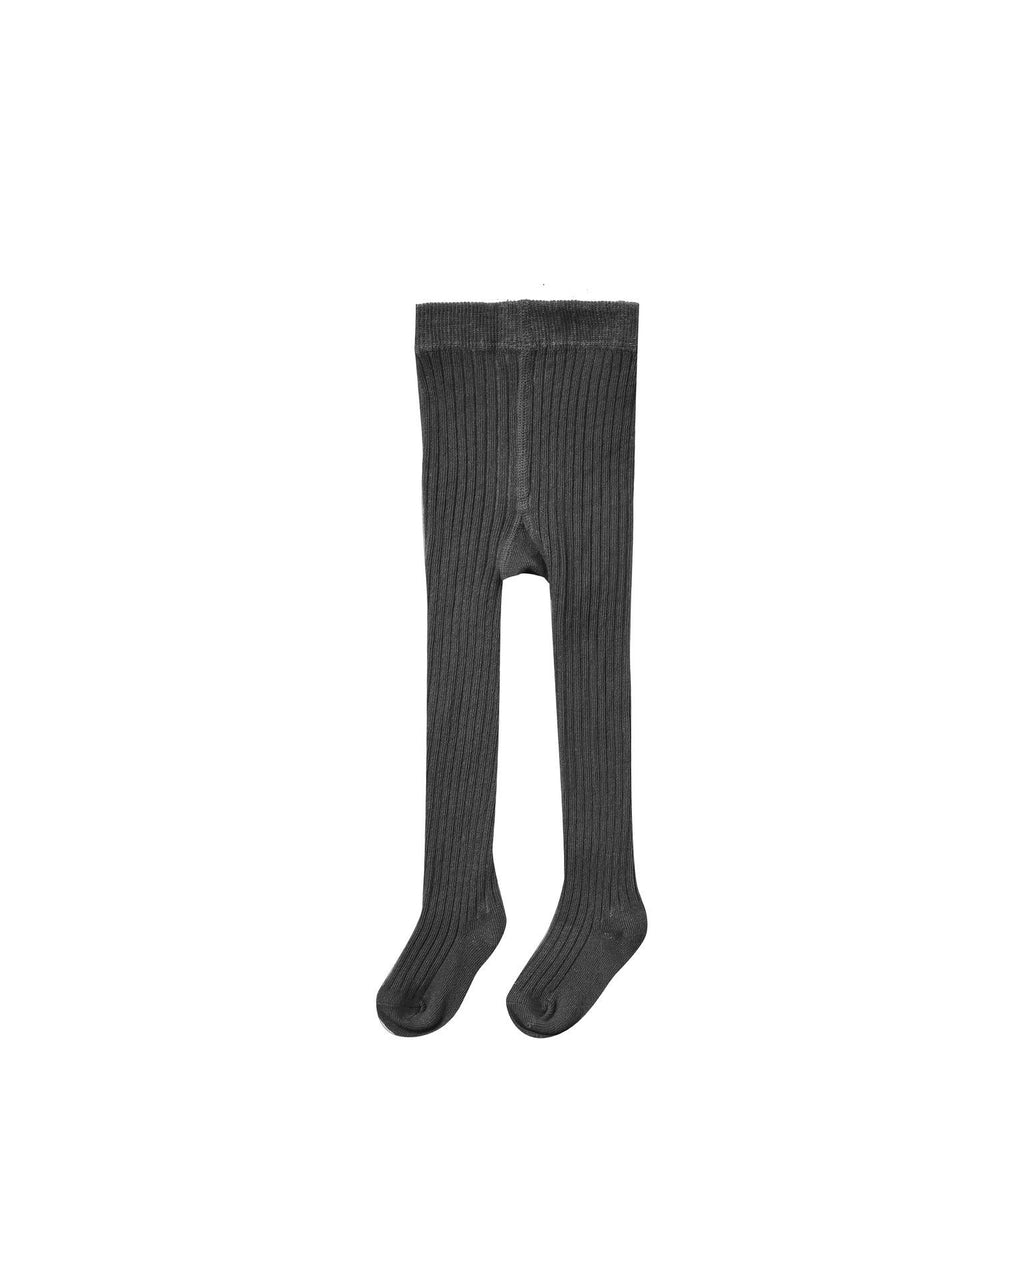 Rylee & Cru Rib Knit Tights - Black